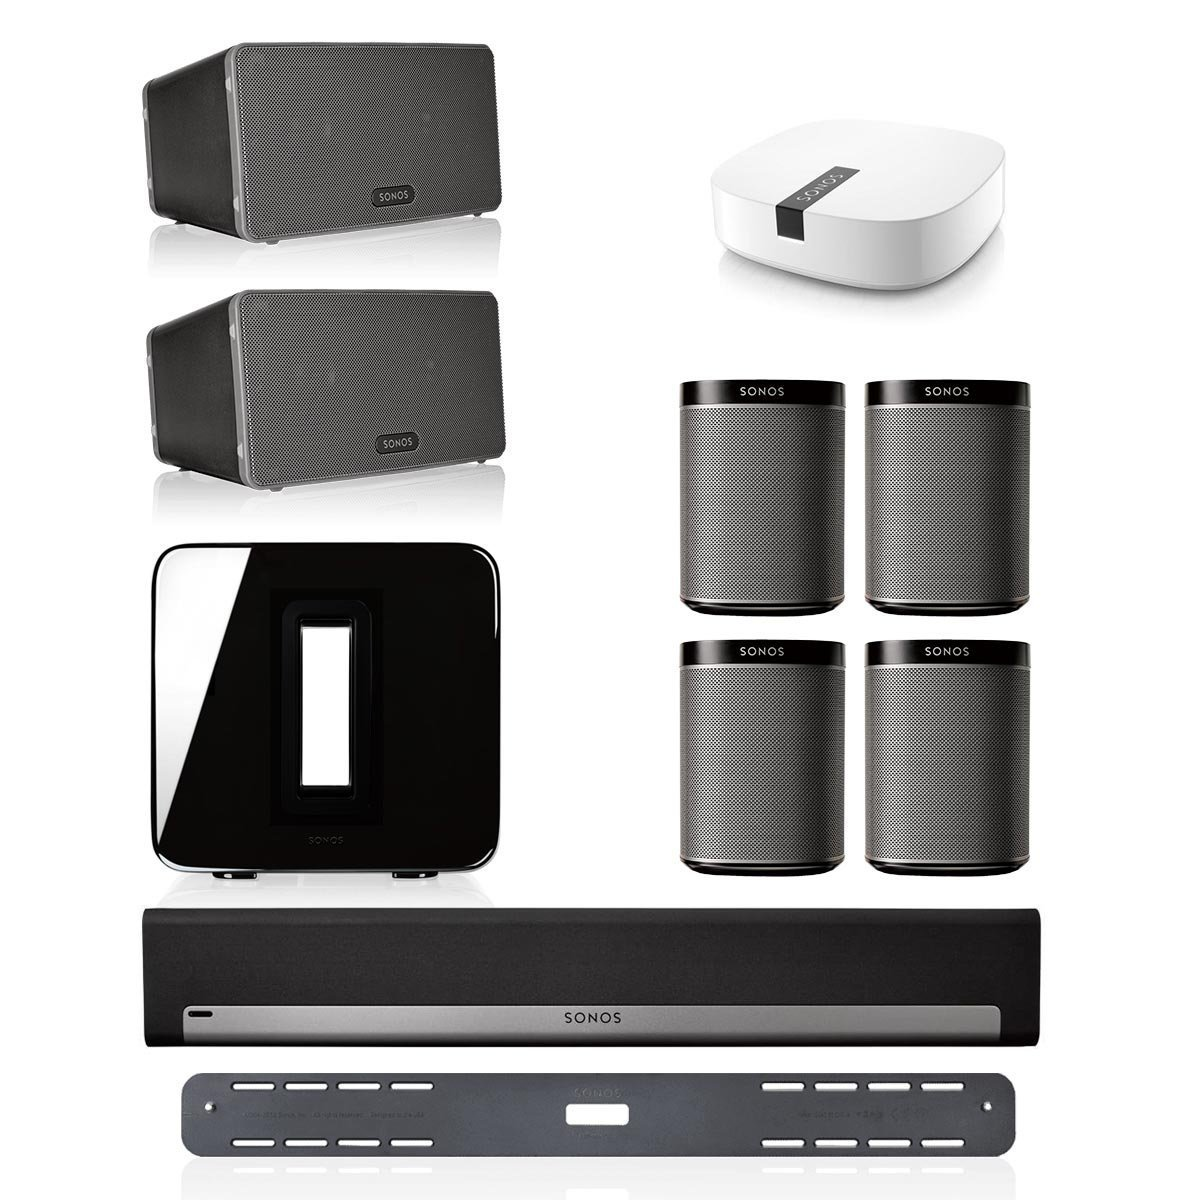 Sonos PLAYBAR Multi-Room Whole House Home Theater System with PLAY:1 Speakers, PLAY:3 Speaker, and SUB Wireless Subwoofer (Black)